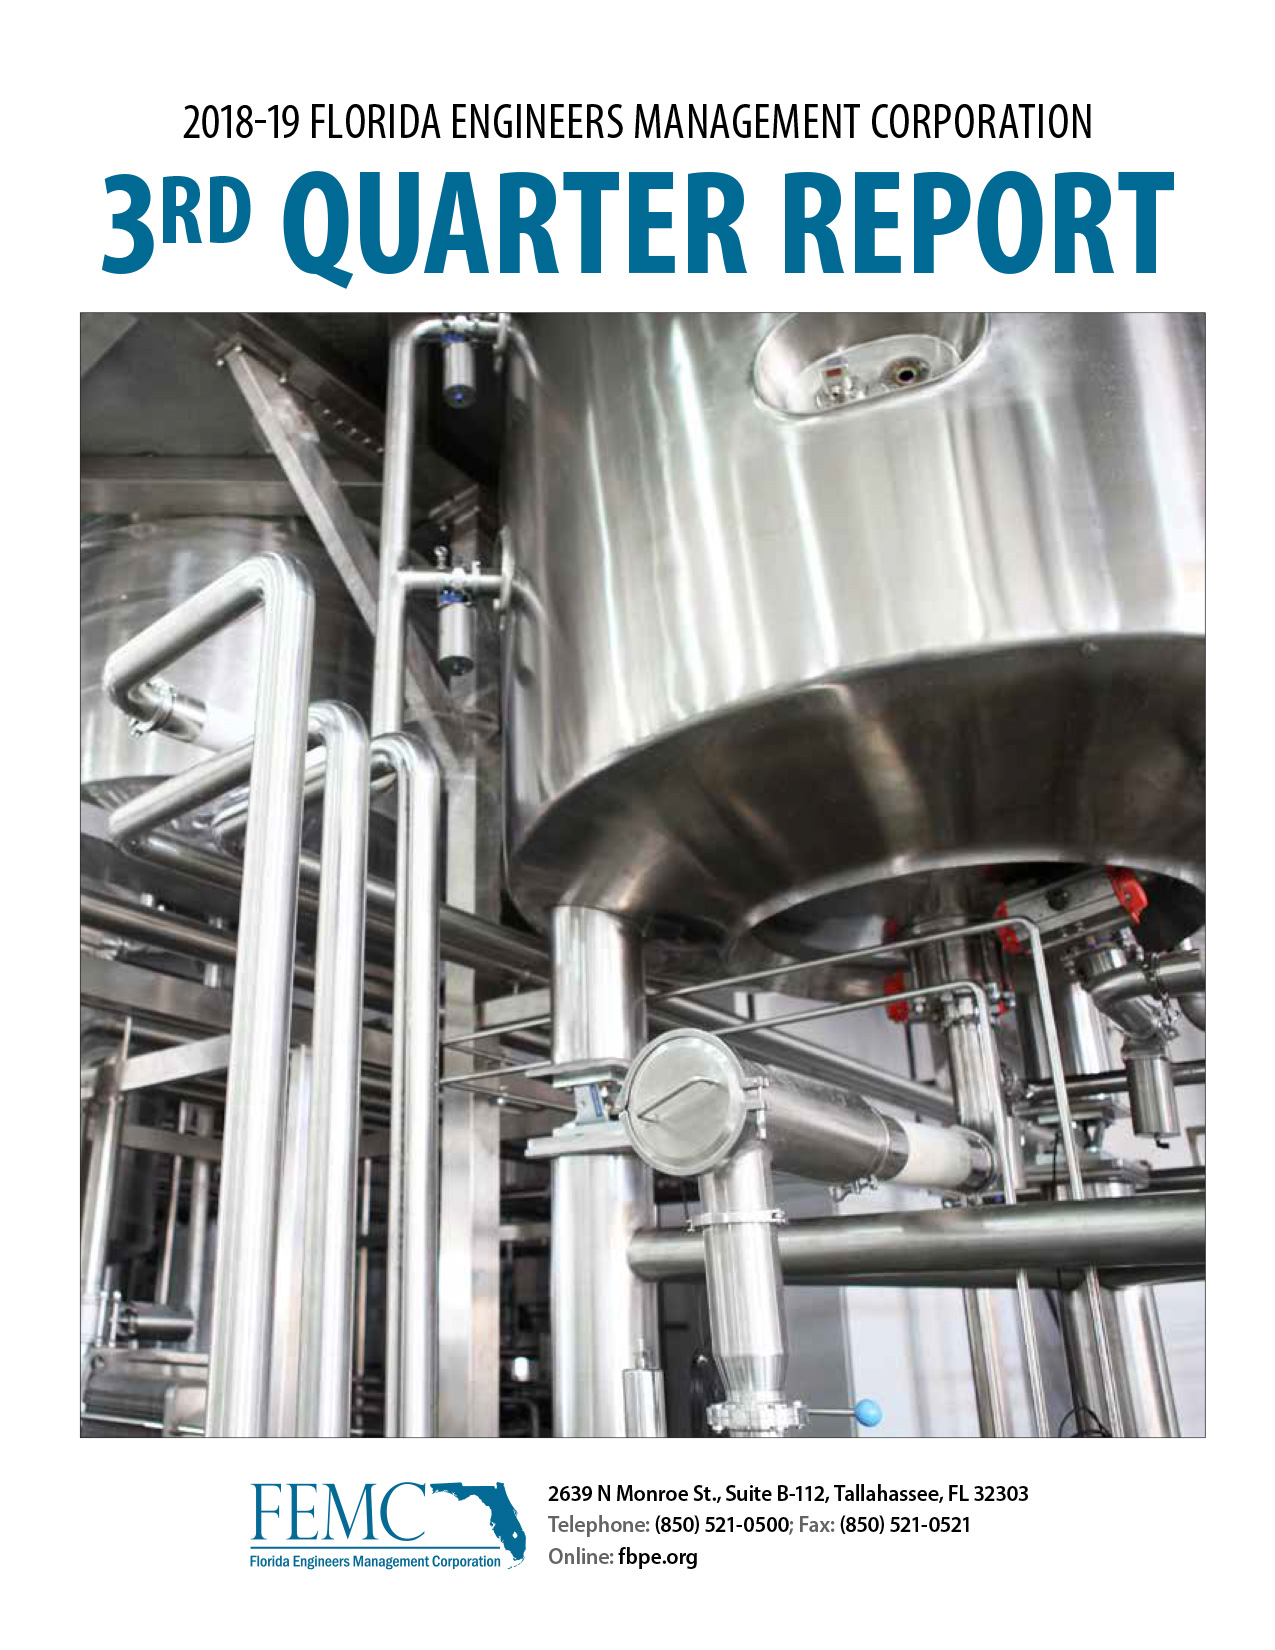 Cover of the 2018-19 Florida Engineers Management 3rd Quarter Report, showing a chemical engineering-related photo of silver pipes and tanks